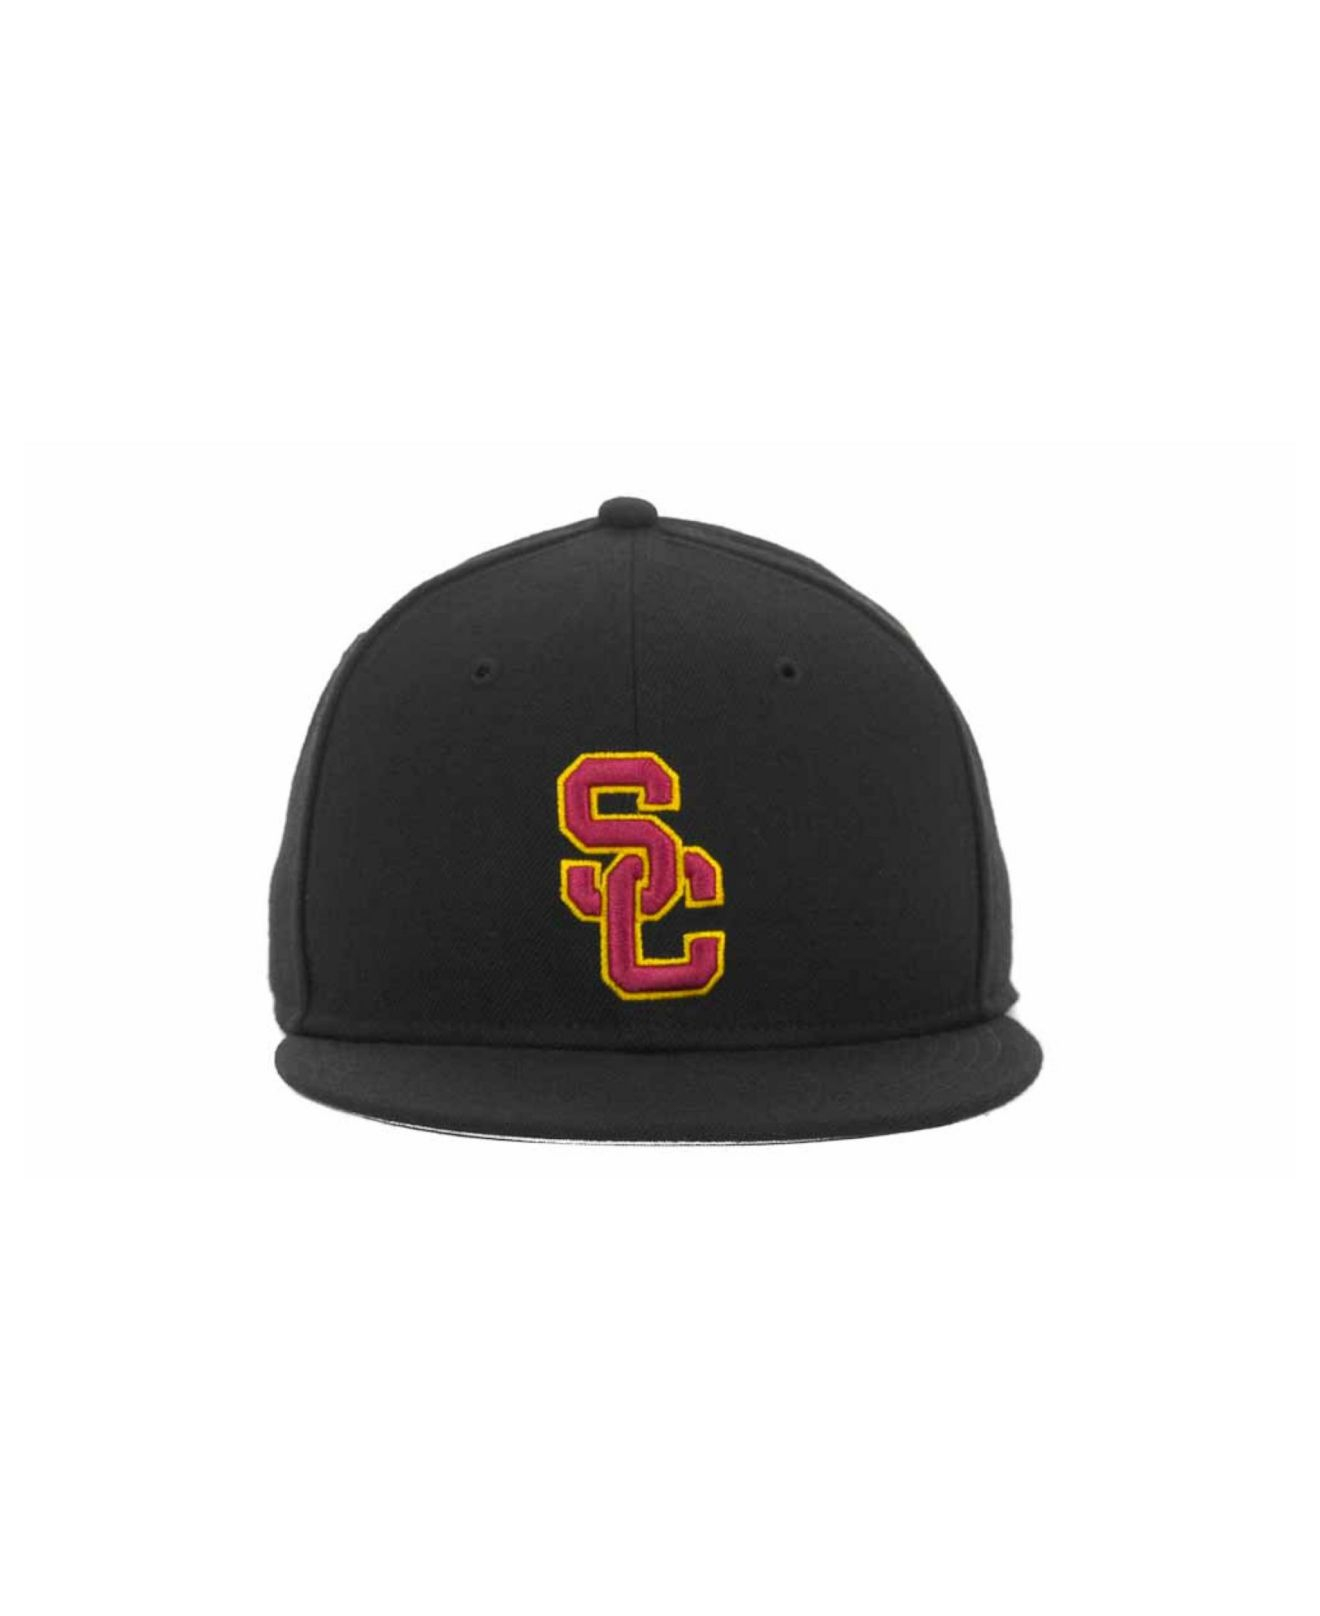 norway lyst nike usc trojans true college fitted cap in black for men 56798  4344a 440bf8db9cb1